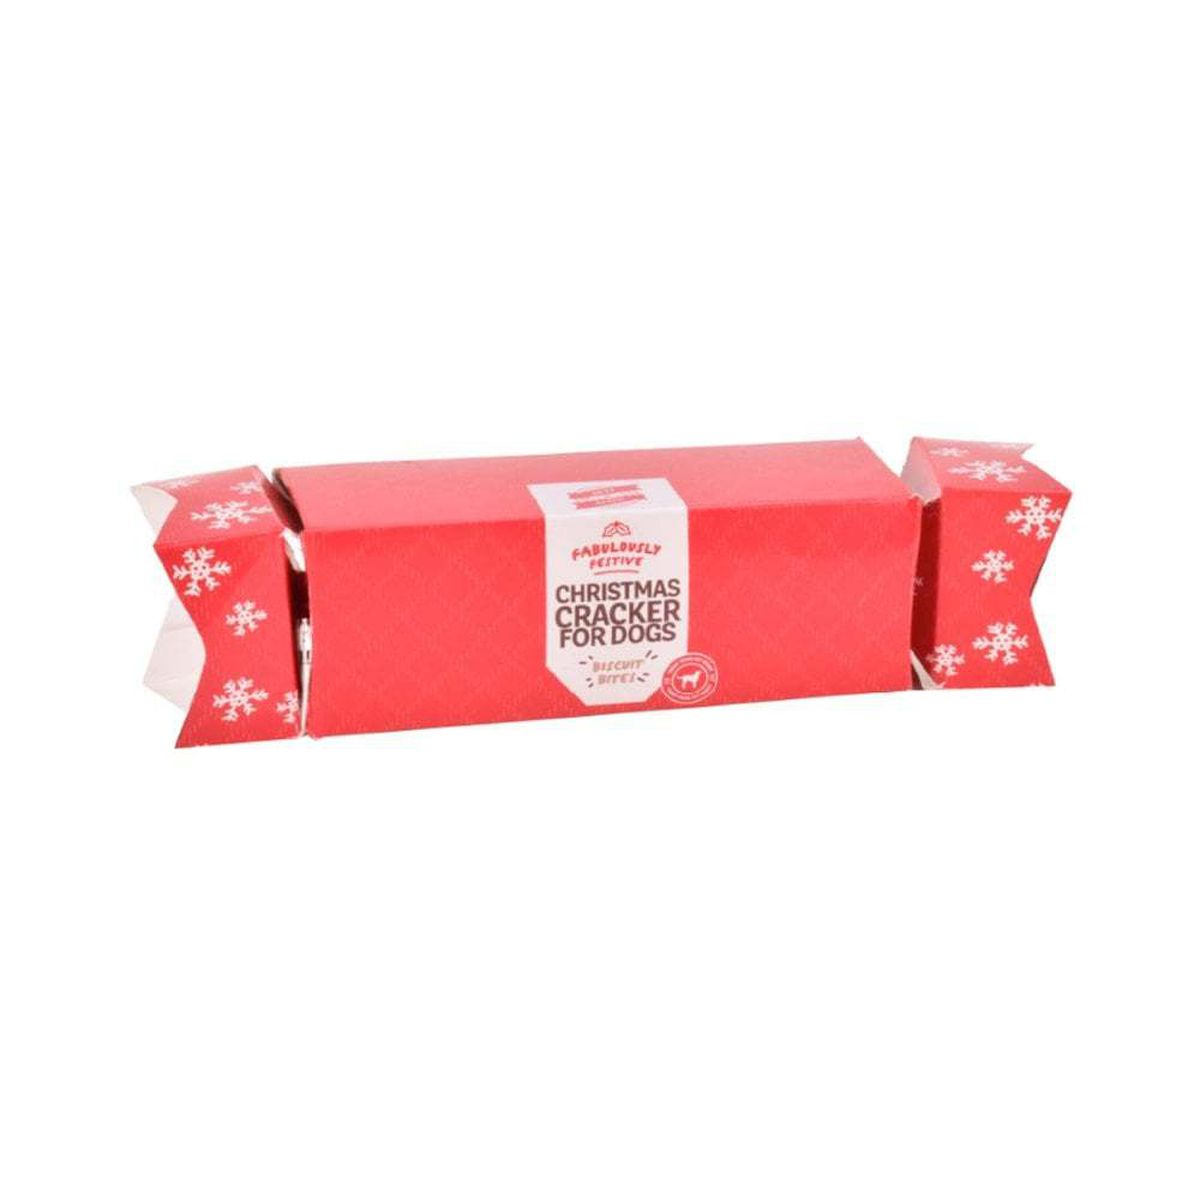 Canine cracker, £5, www.first4hampers.com